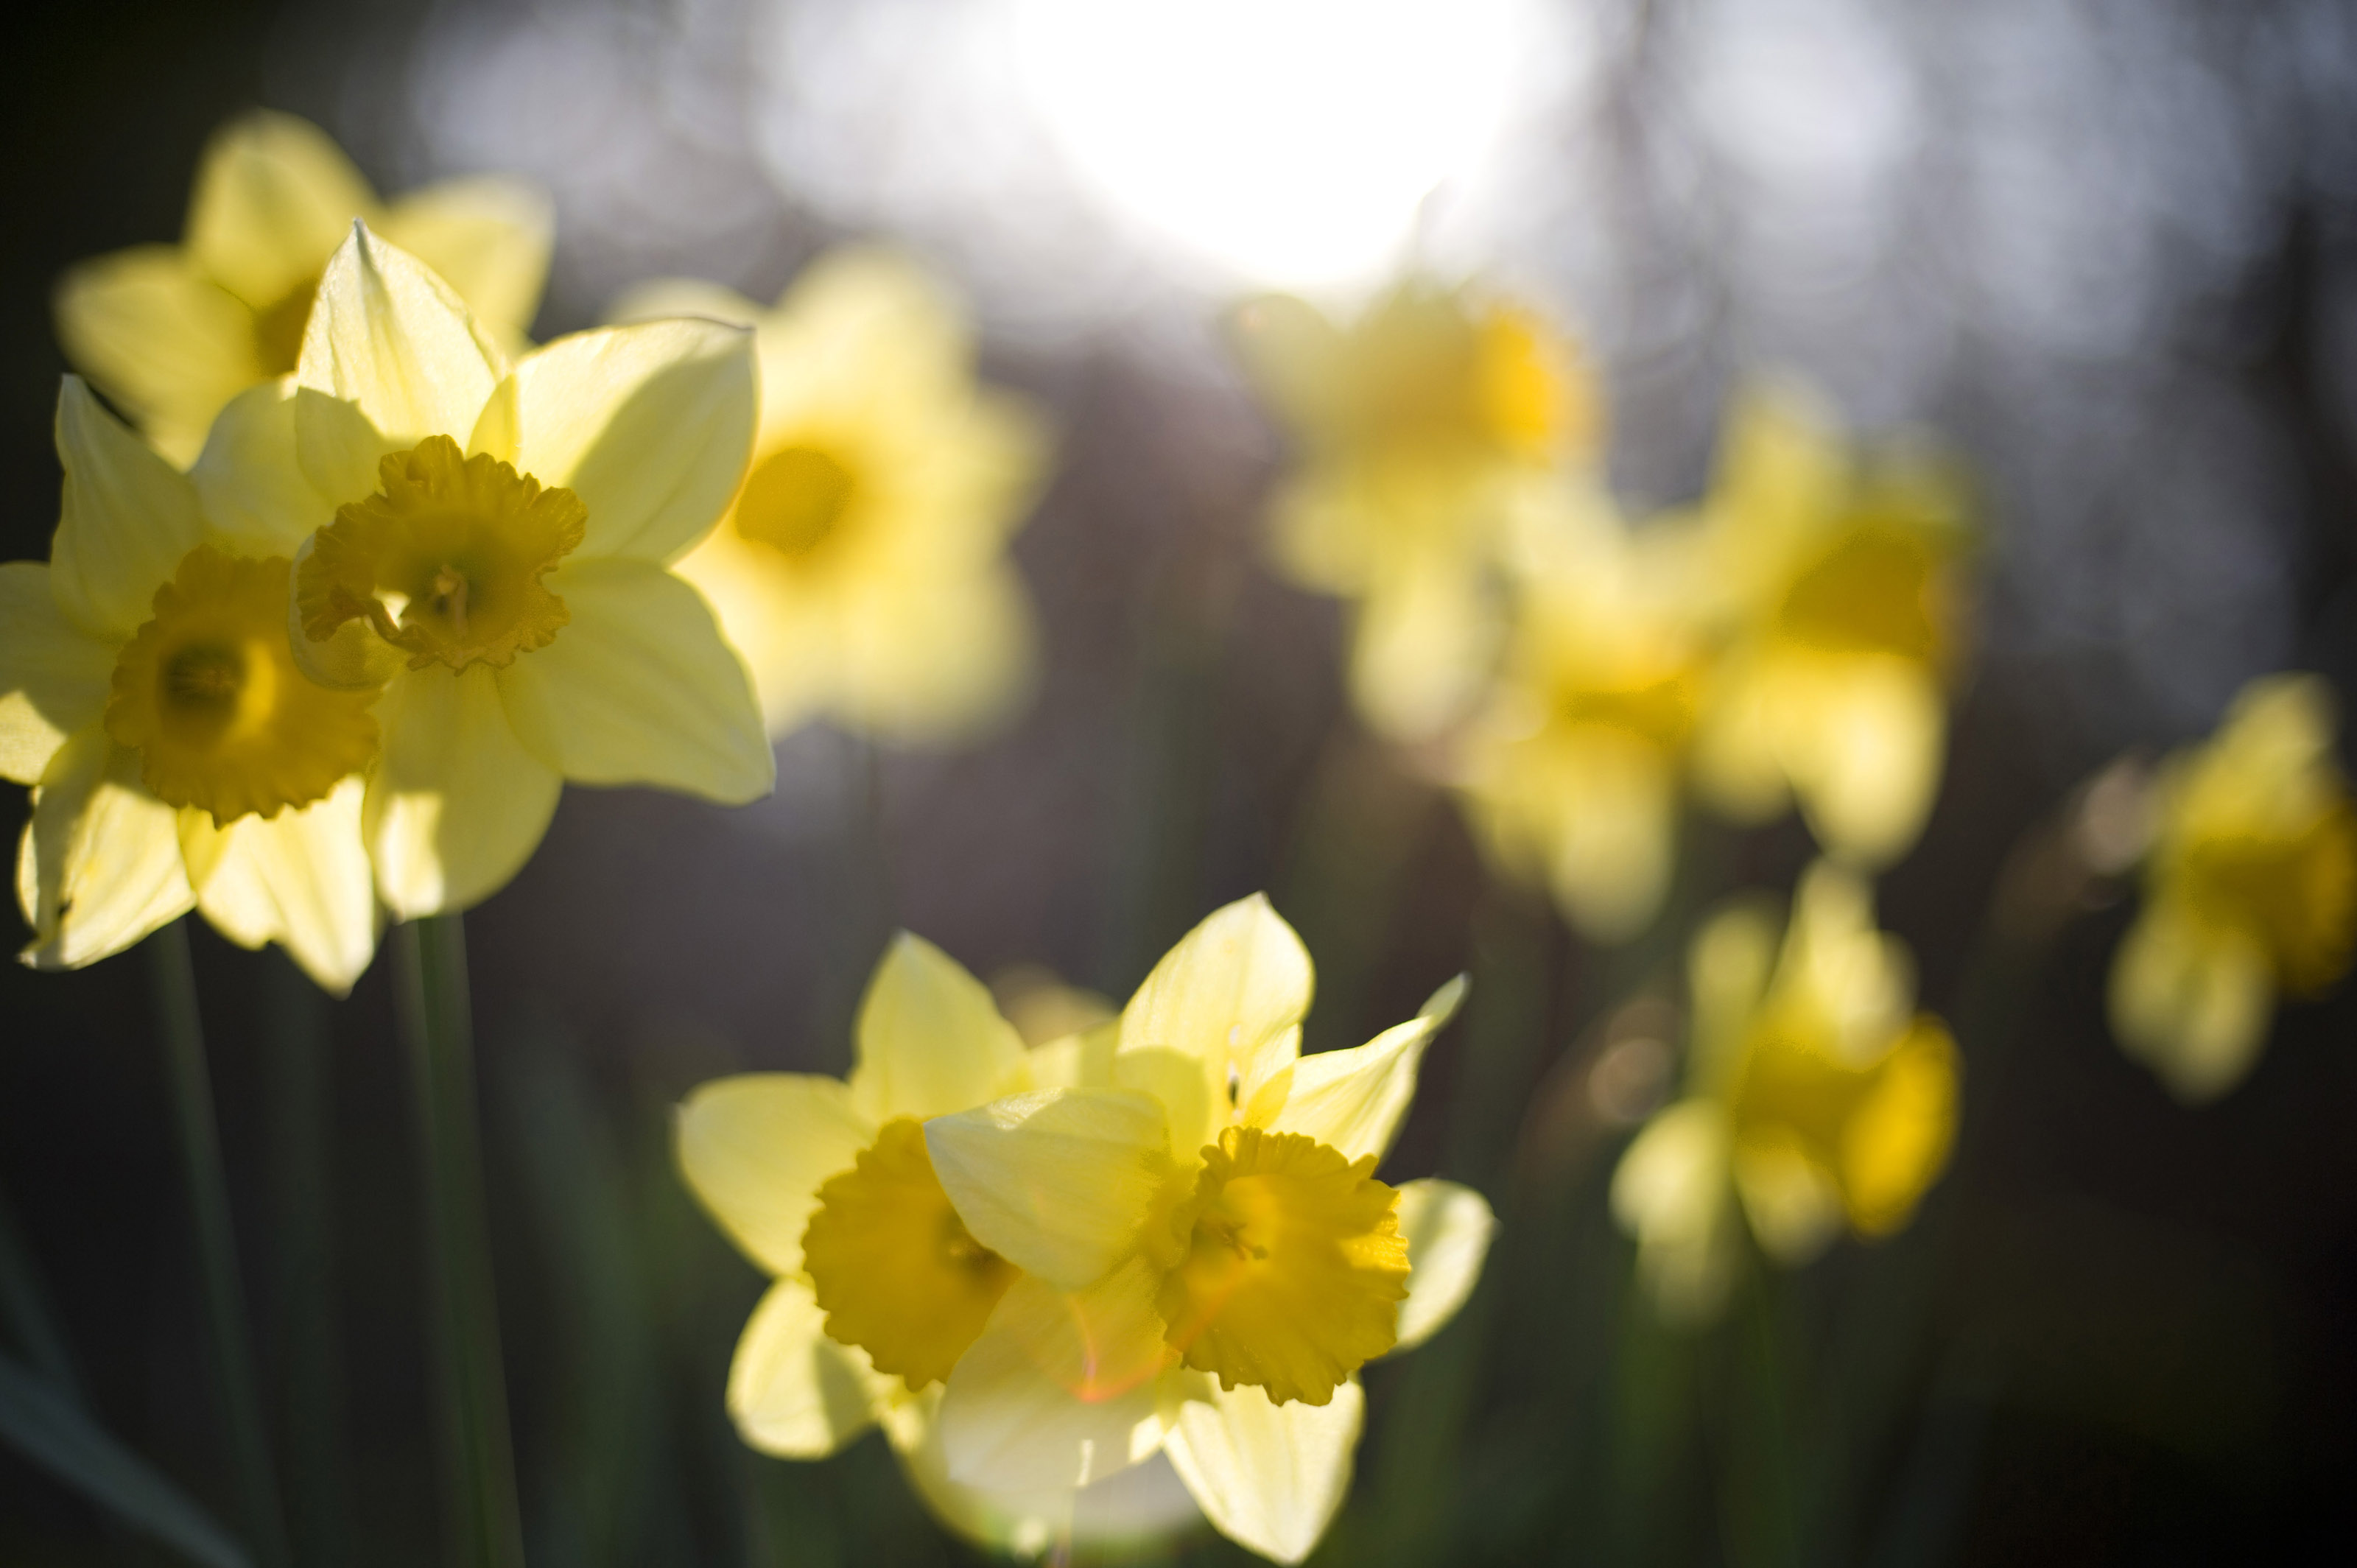 Backlit yellow daffodils-4057 | Stockarch Free Stock Photos